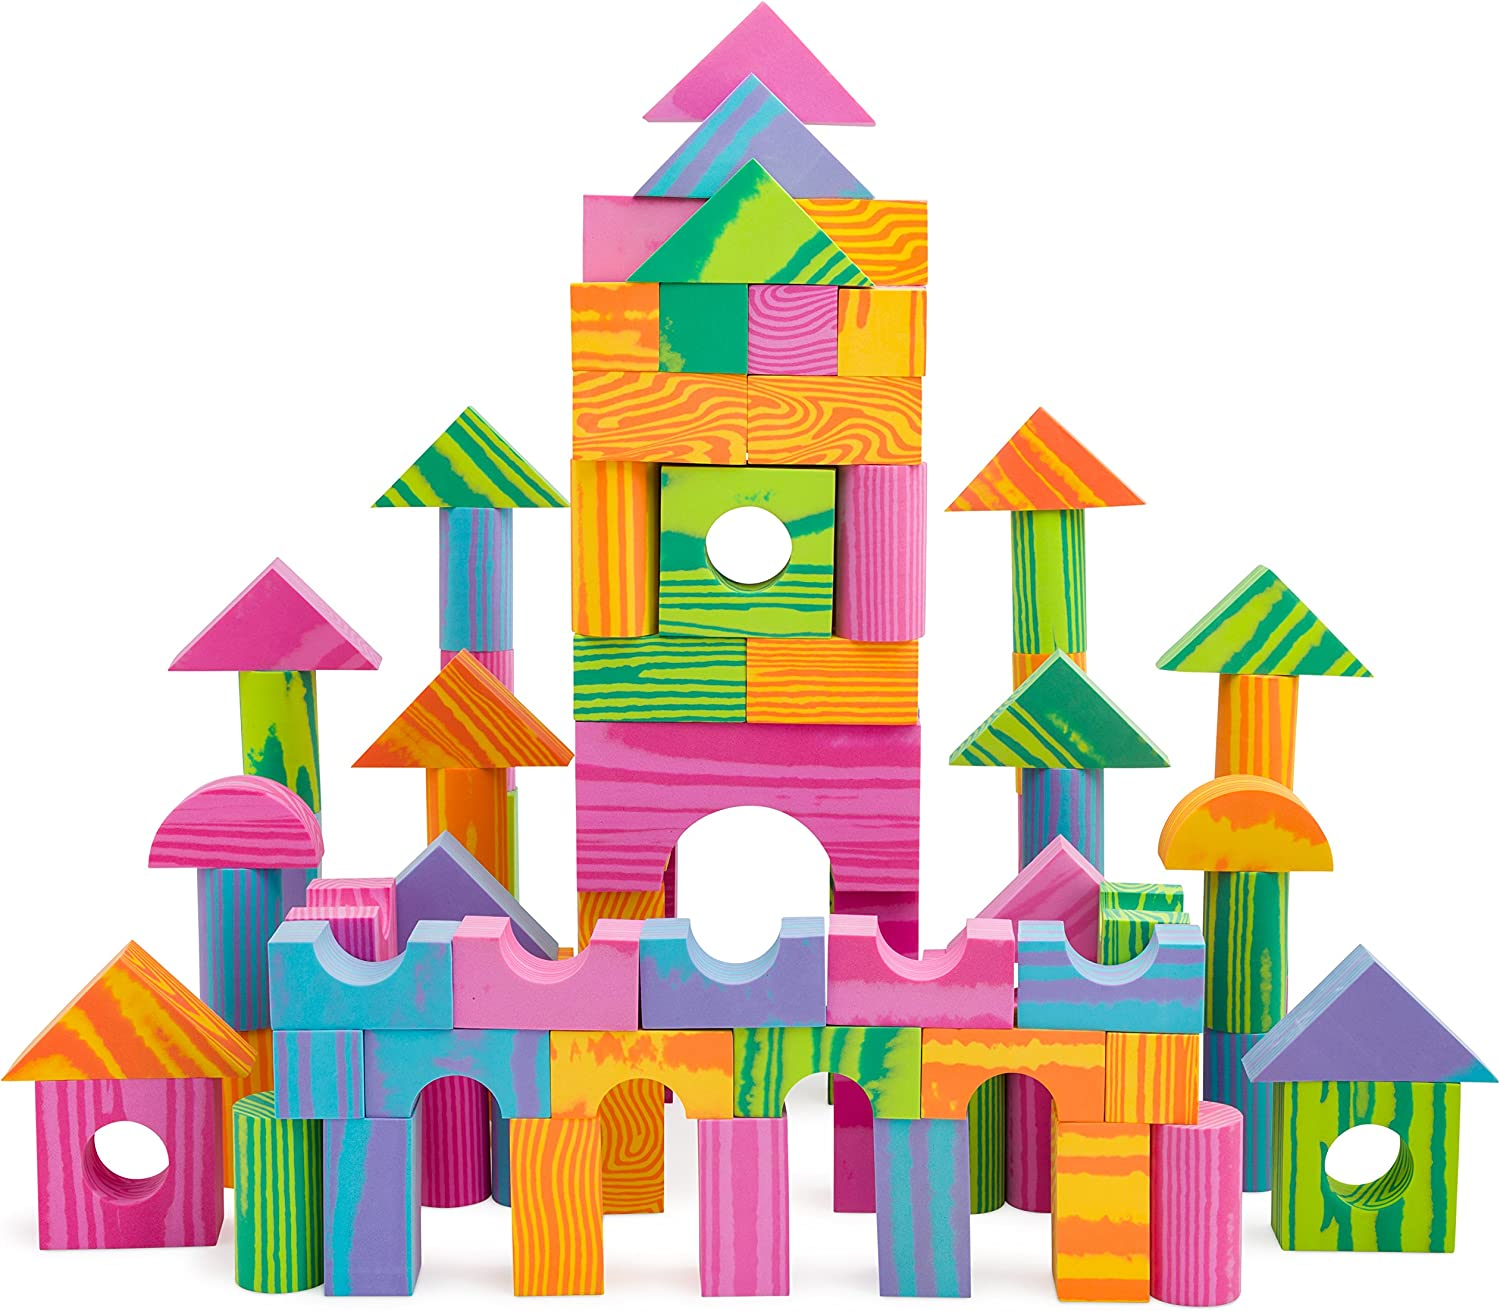 Morvat Foam Block Set- 140 Piece Soft Multi-Colored Building Blocks Educational Stacking Blocks, Foam Building Blocks for Kids - Non-Toxic & BPA Free - Great Bath Toys for Babies and Toddlers